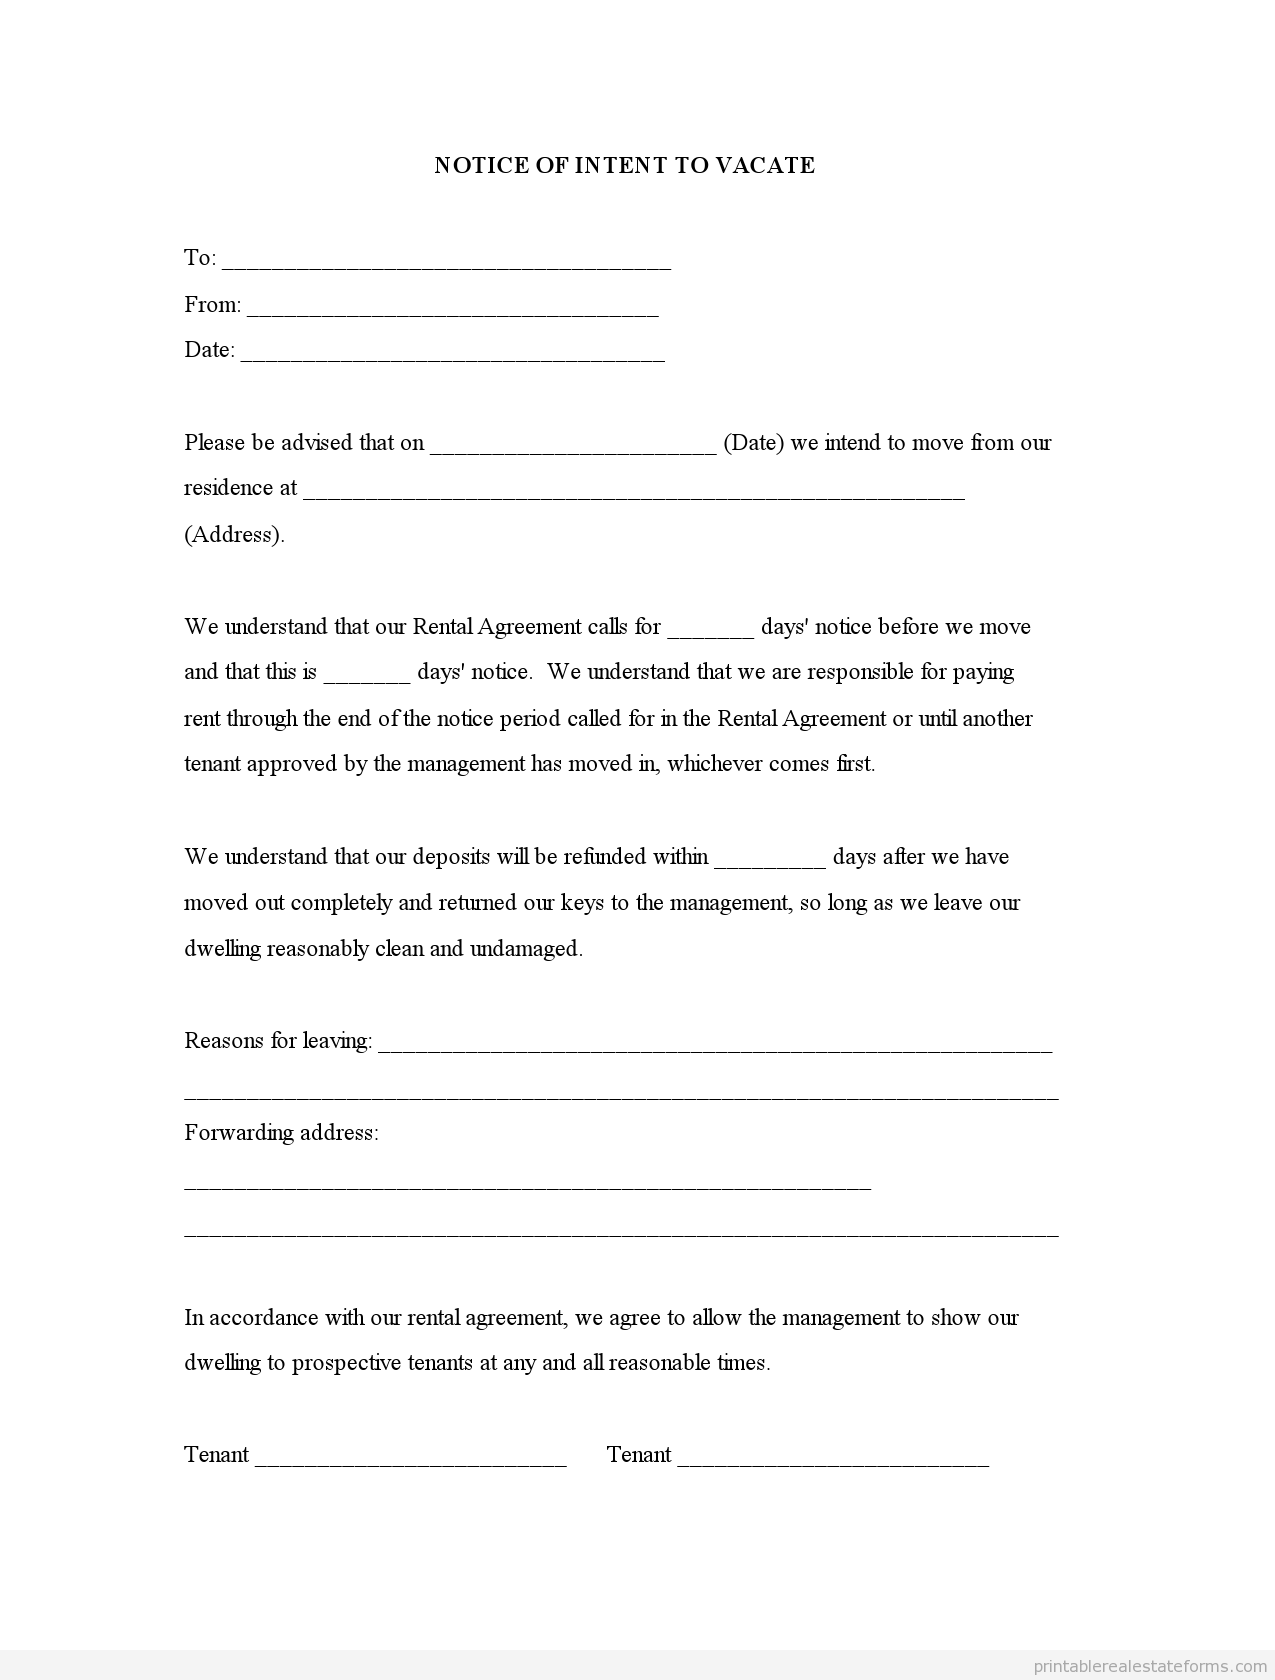 Free Printable Notice To Vacate Form.Intent To Vacate Letter.Letter Of  Intent To Vacate.Intent To Vacate Template.Notice Of Intent To Vacate.  Free Notice To Vacate